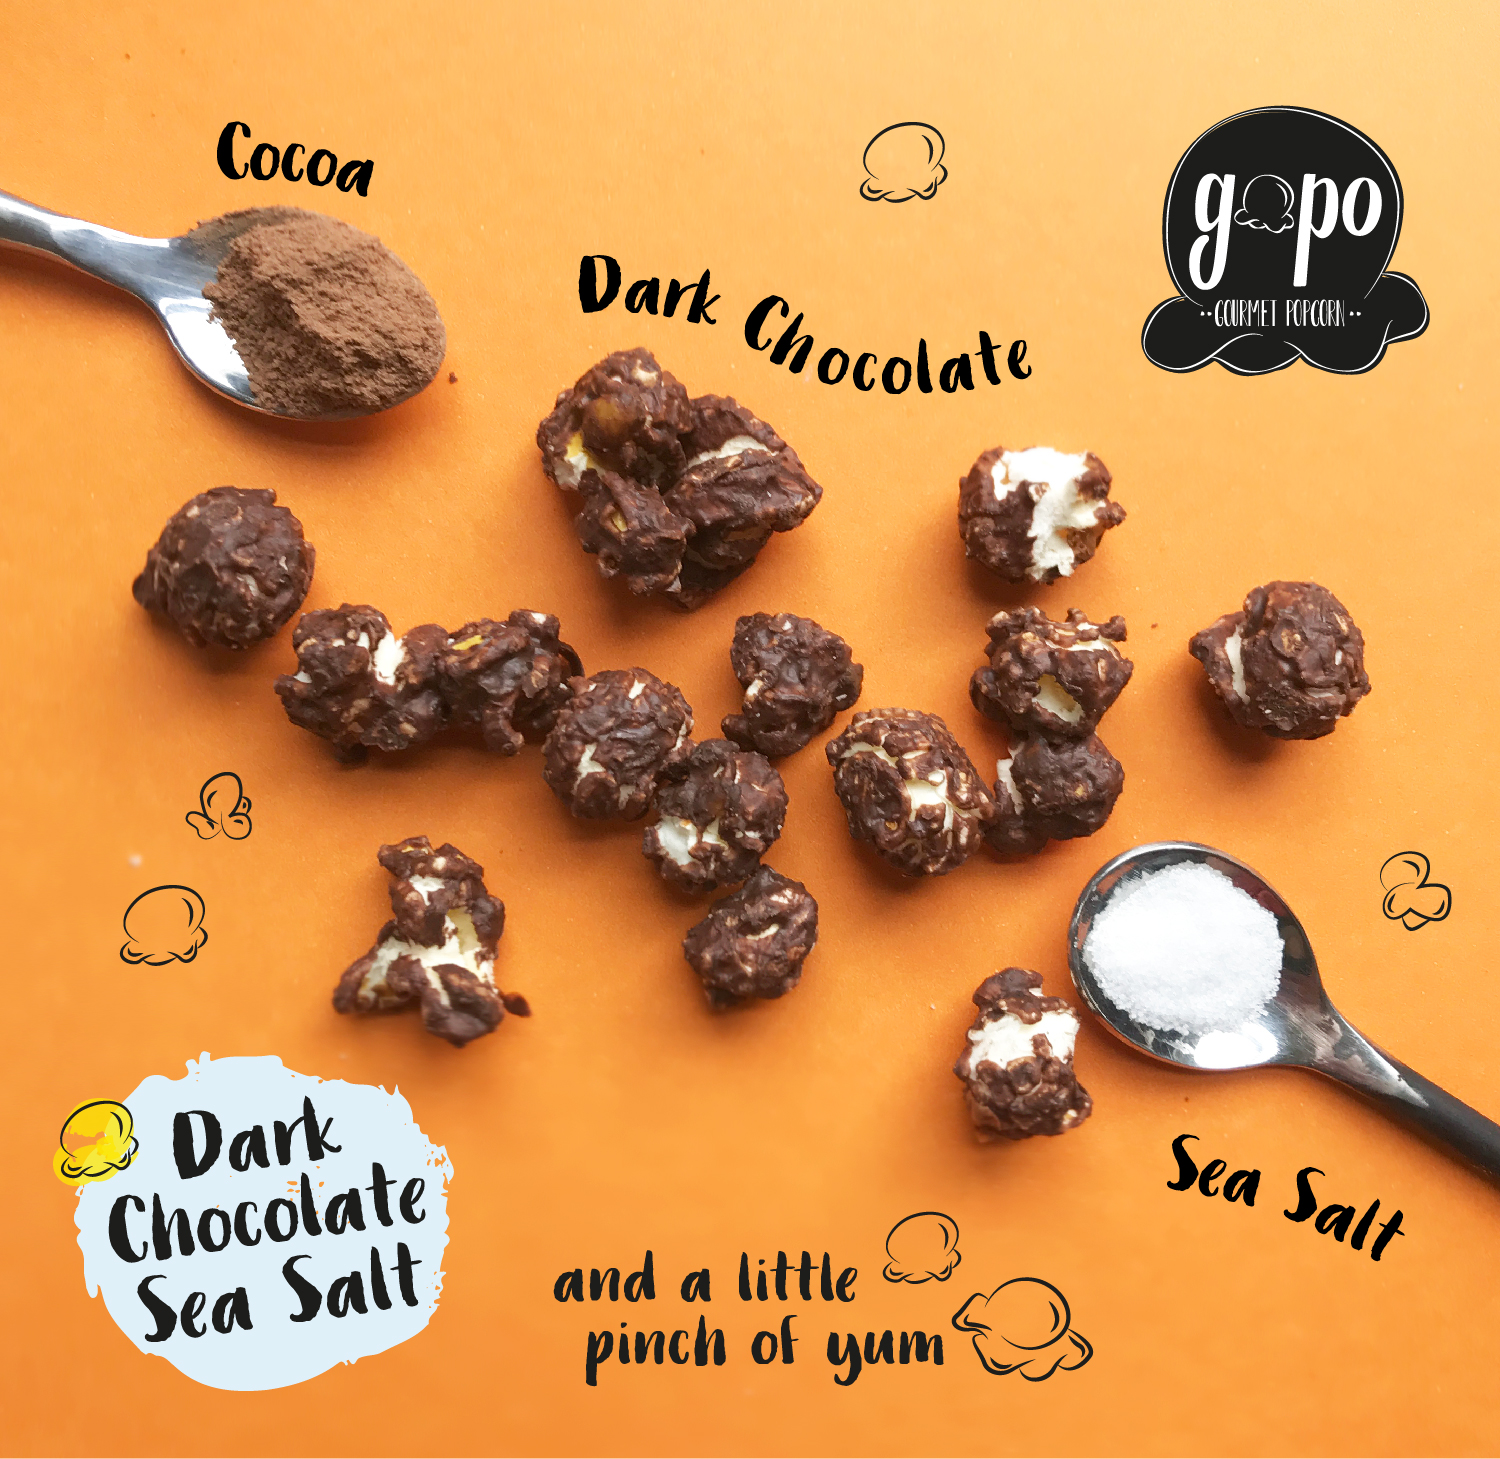 Dark-Chocolate_Sea-Salt-01.jpg